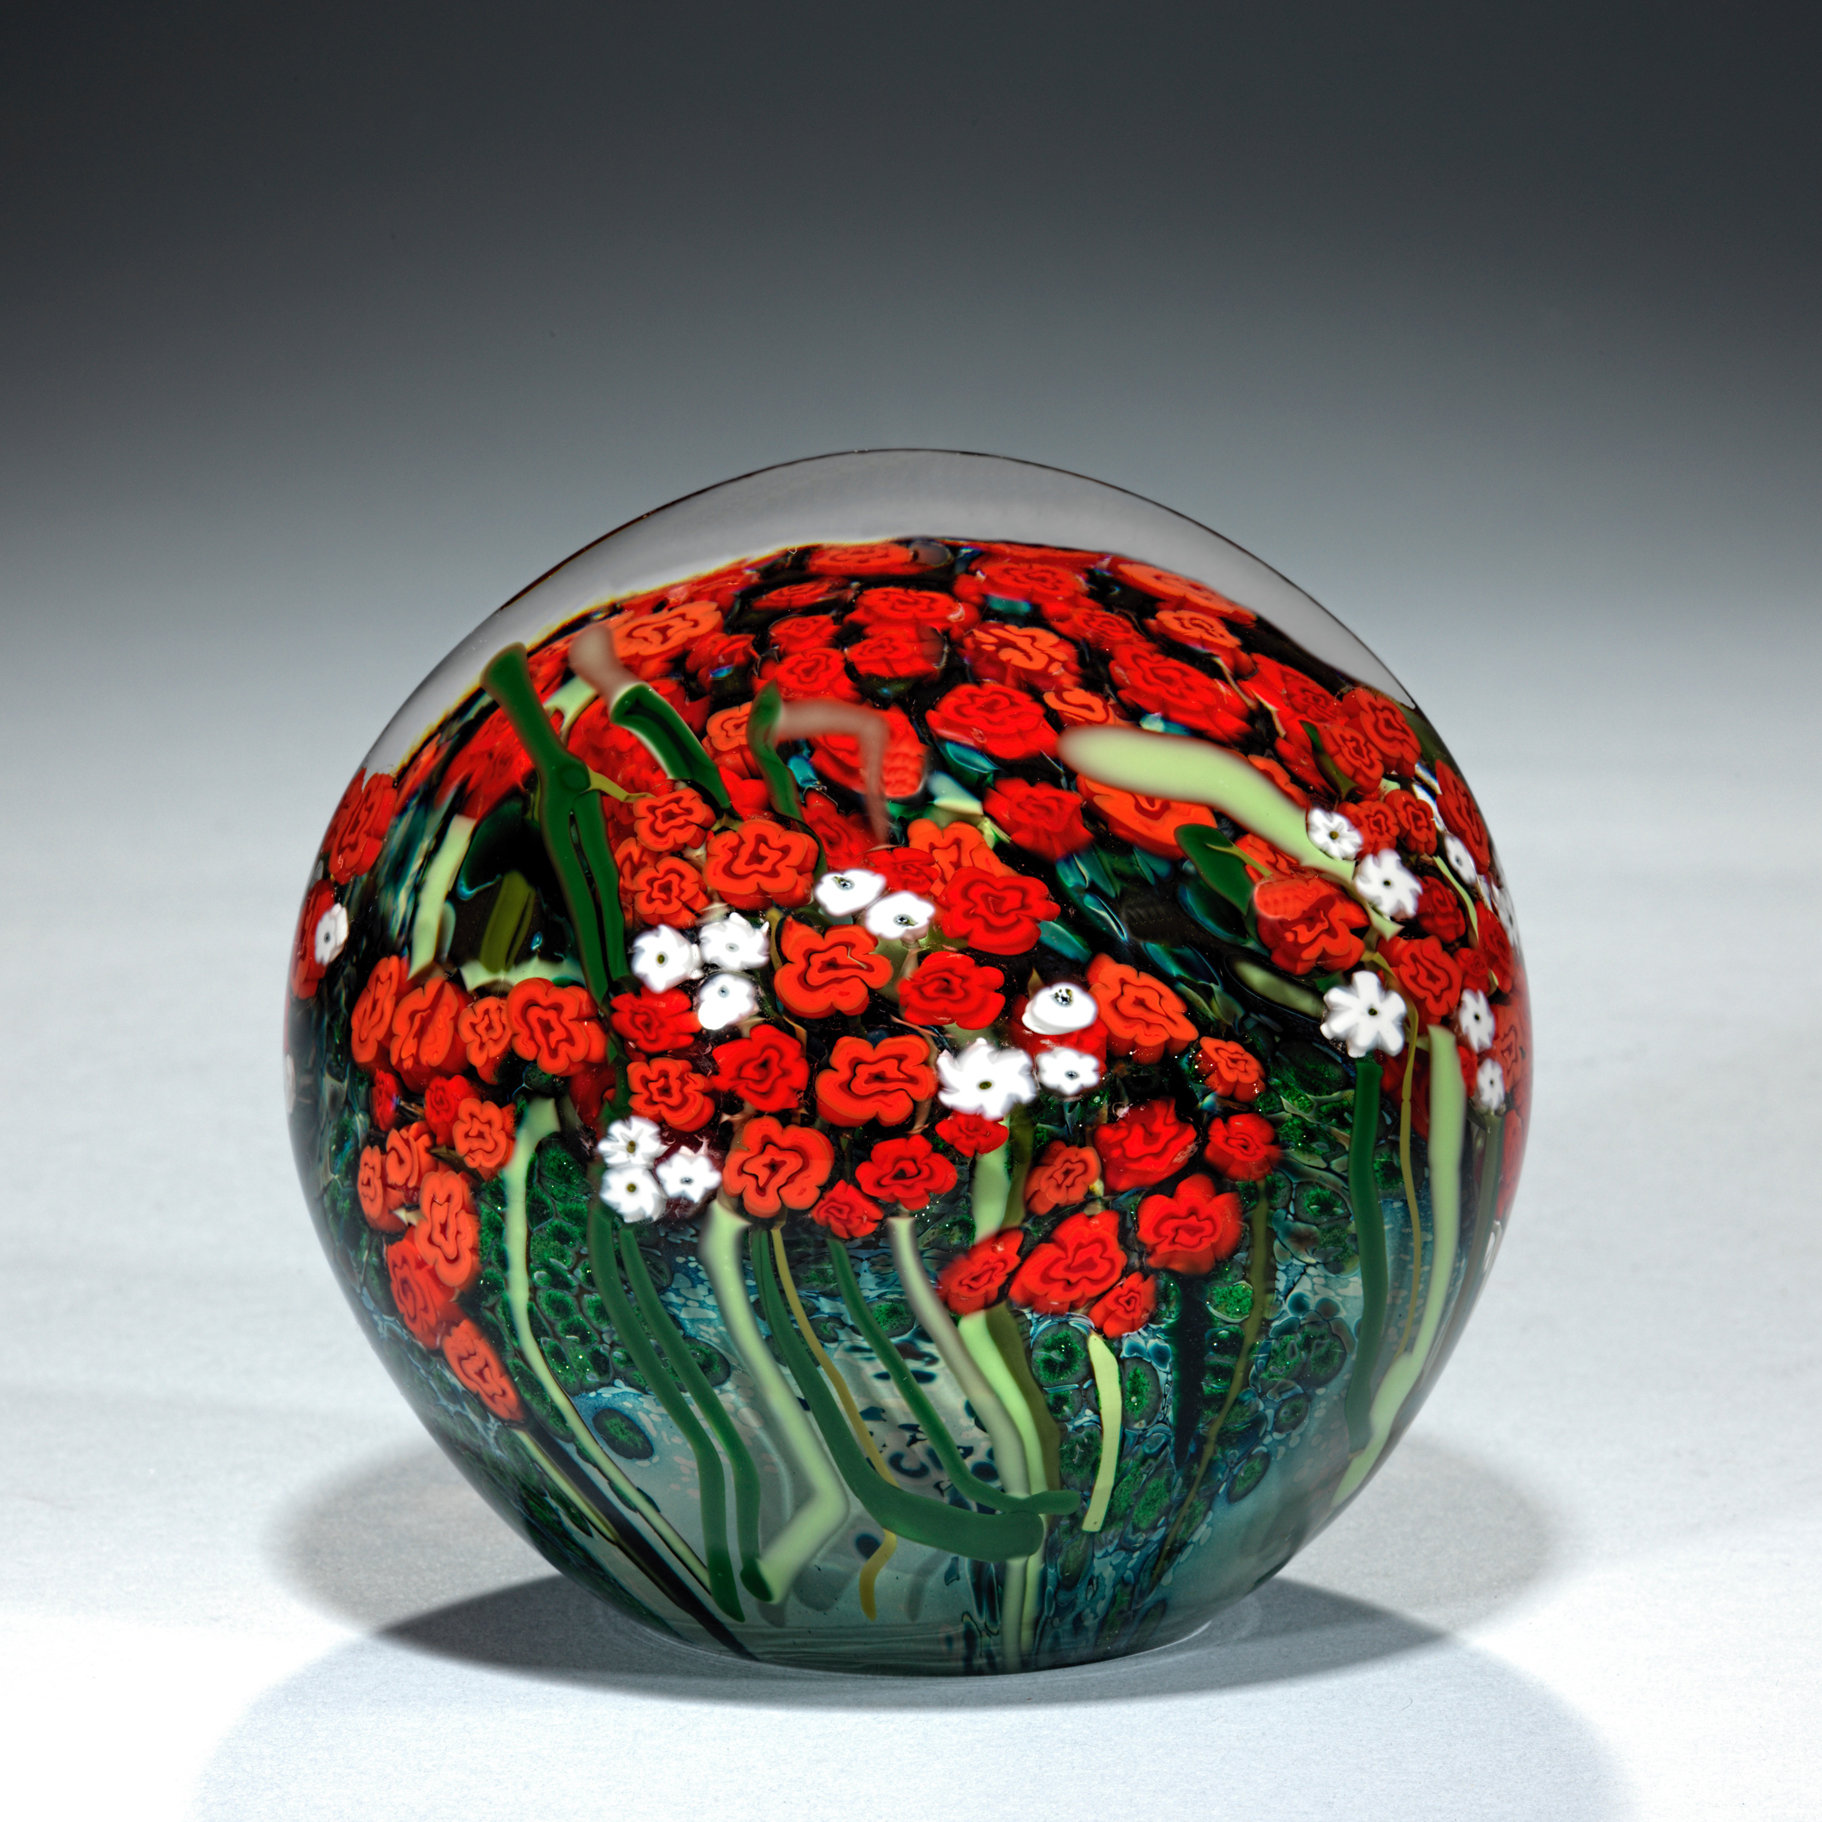 Large Red Rose And Babys Breath Bouquet Paperweight By Shawn Messenger Art Glass Paperweight